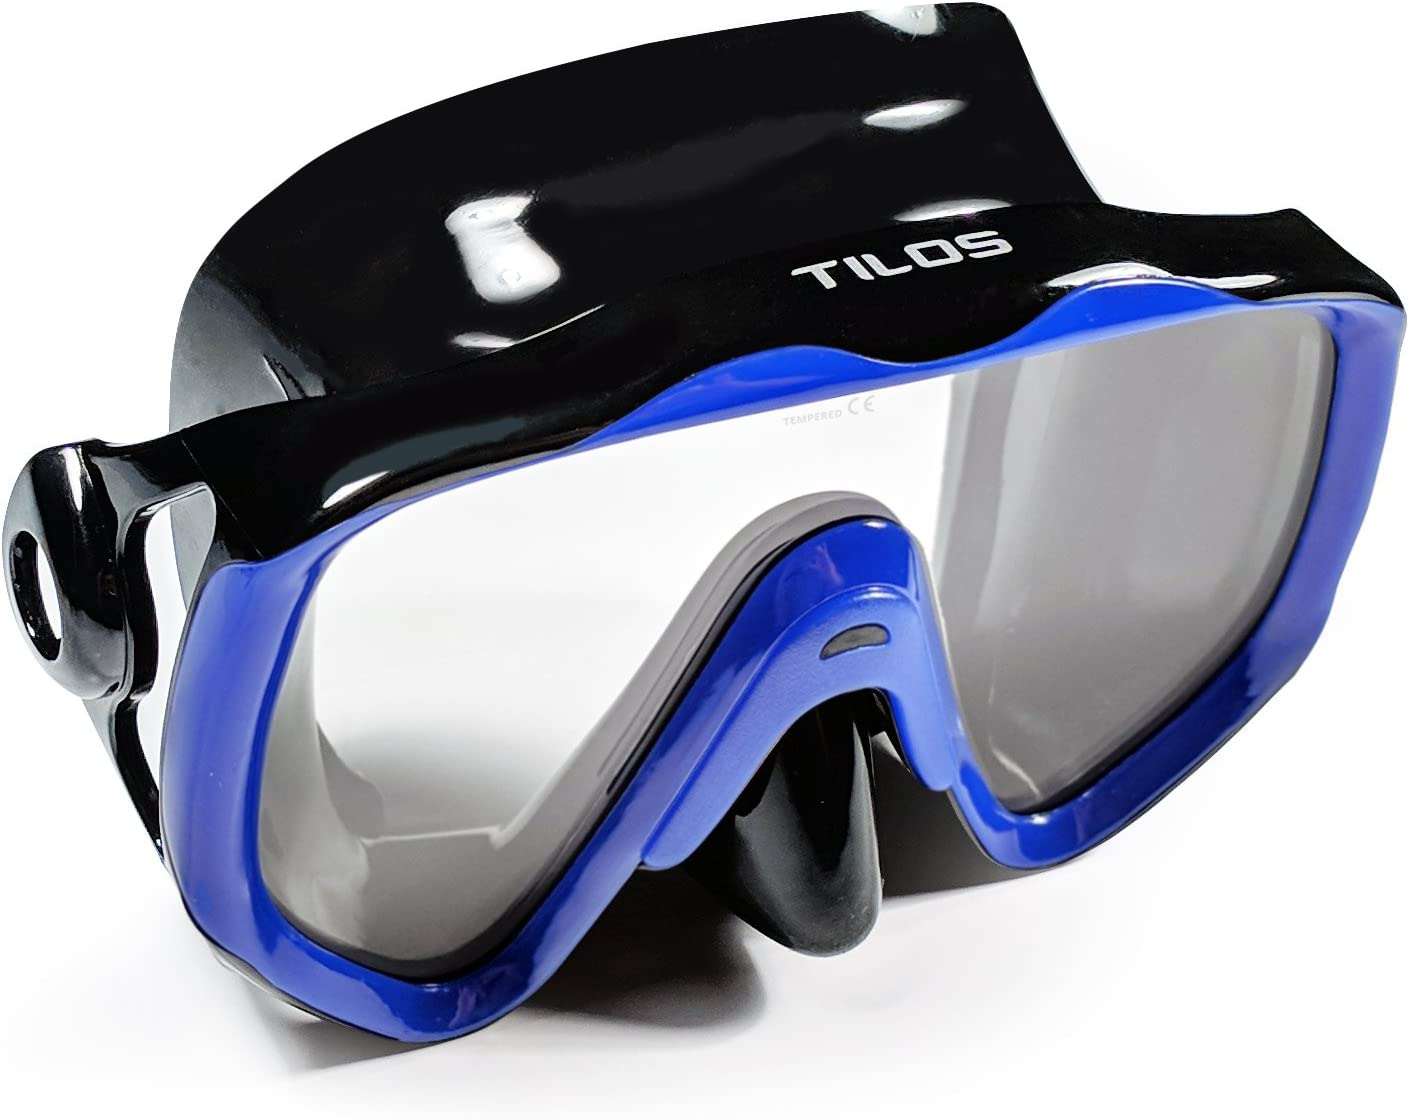 Tilos Titanica Single Lens Mask for Scuba and Snorkeling Black Silicone, Adult